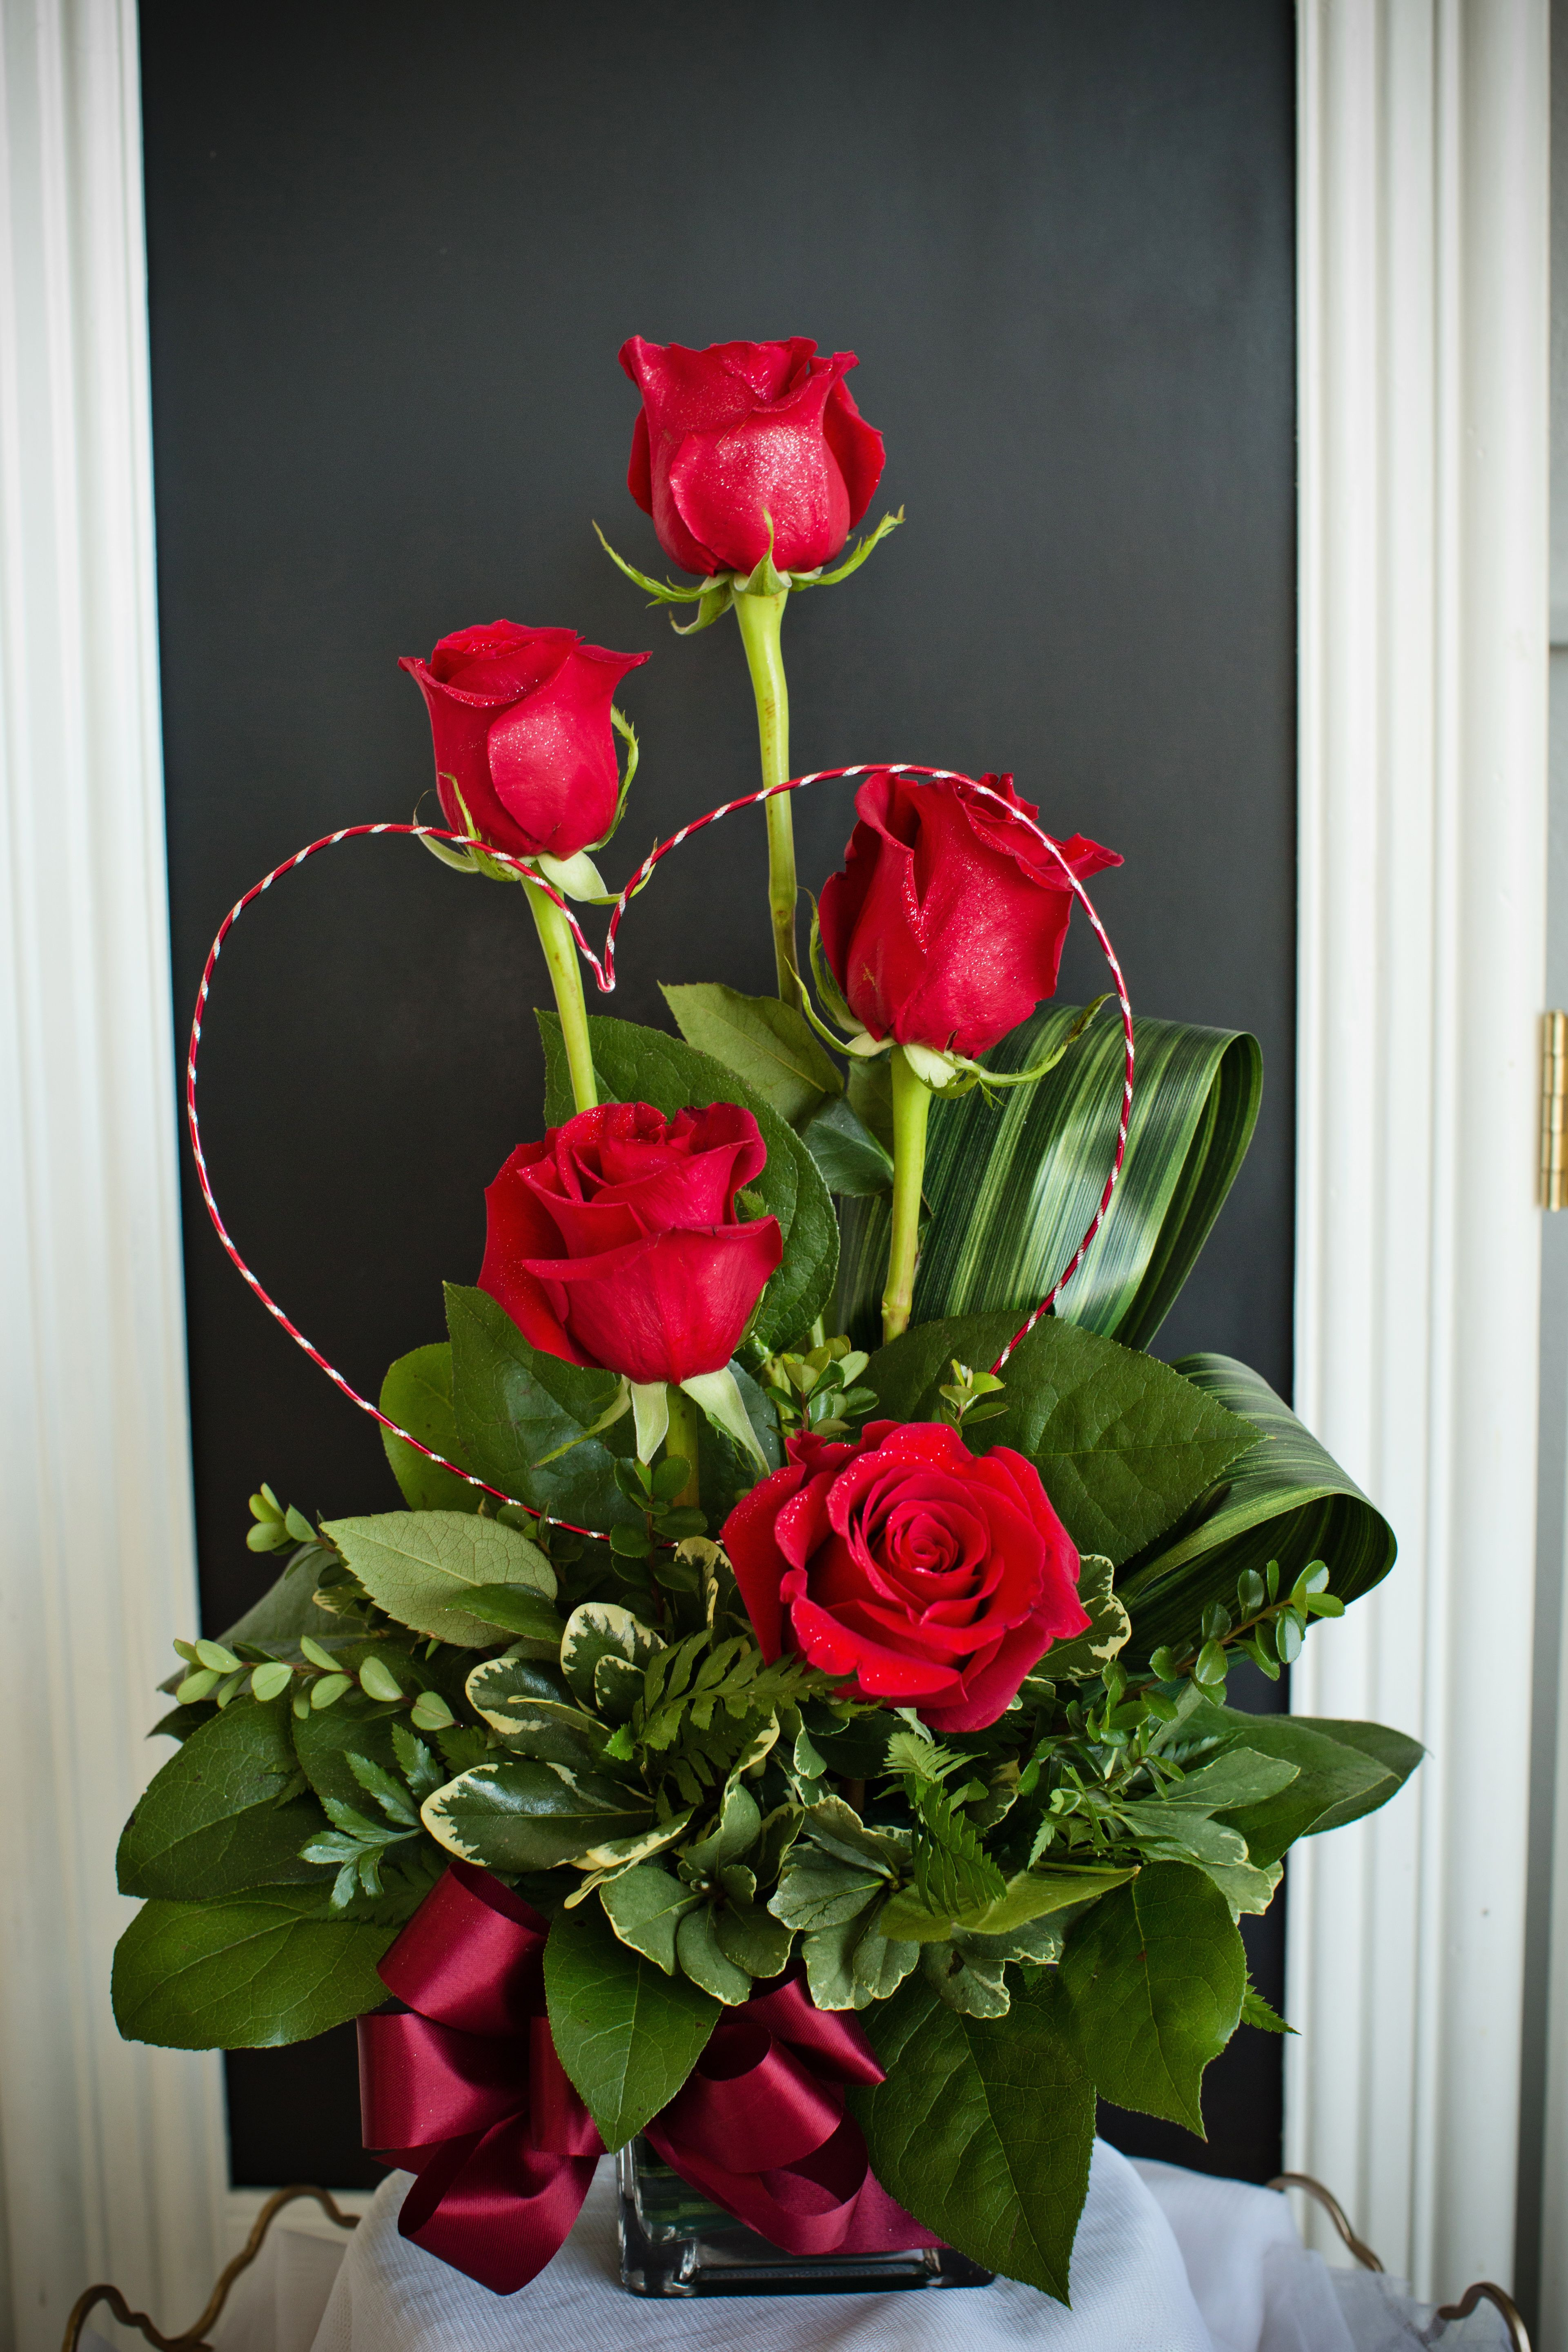 A Stunning And Unique Valentines Day Arrangement Created With Red